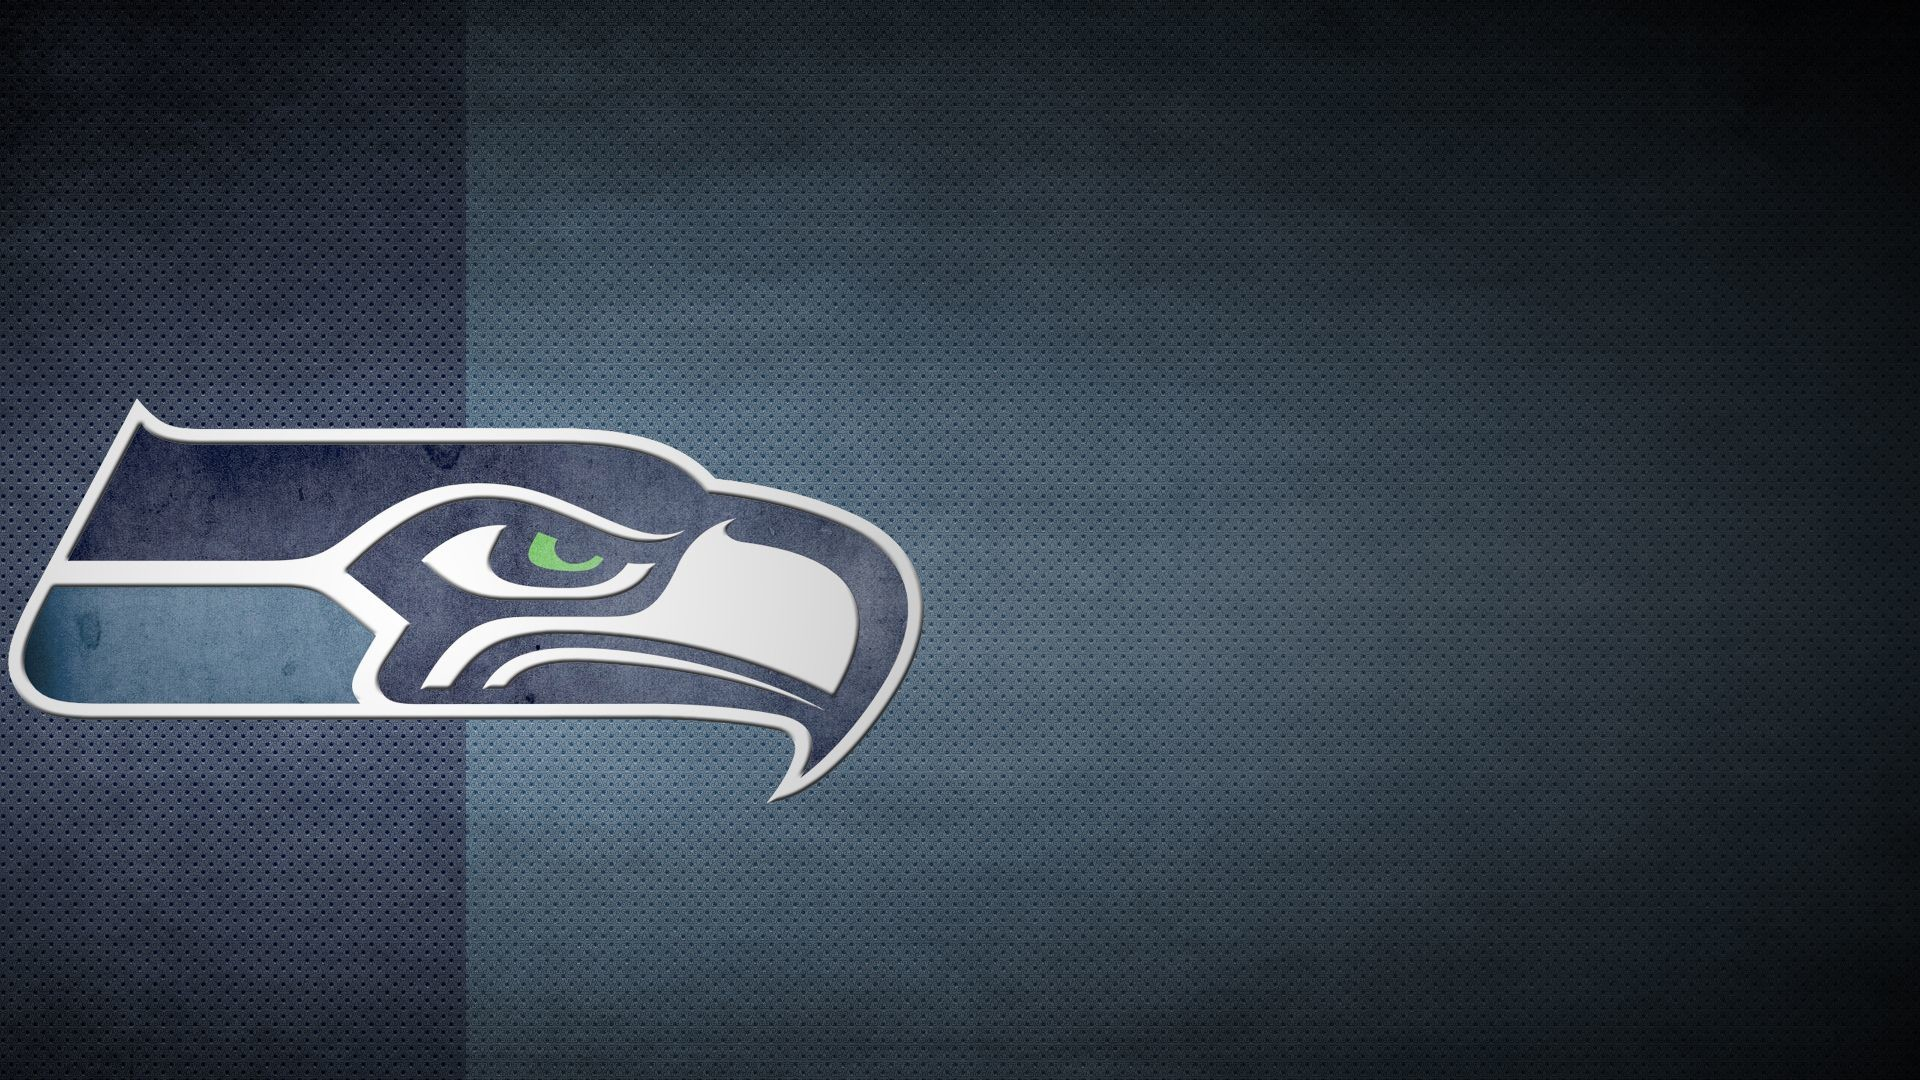 1920x1080 Seattle Seahawks Wallpaper 13 - 1920 X 1080 | stmed.net